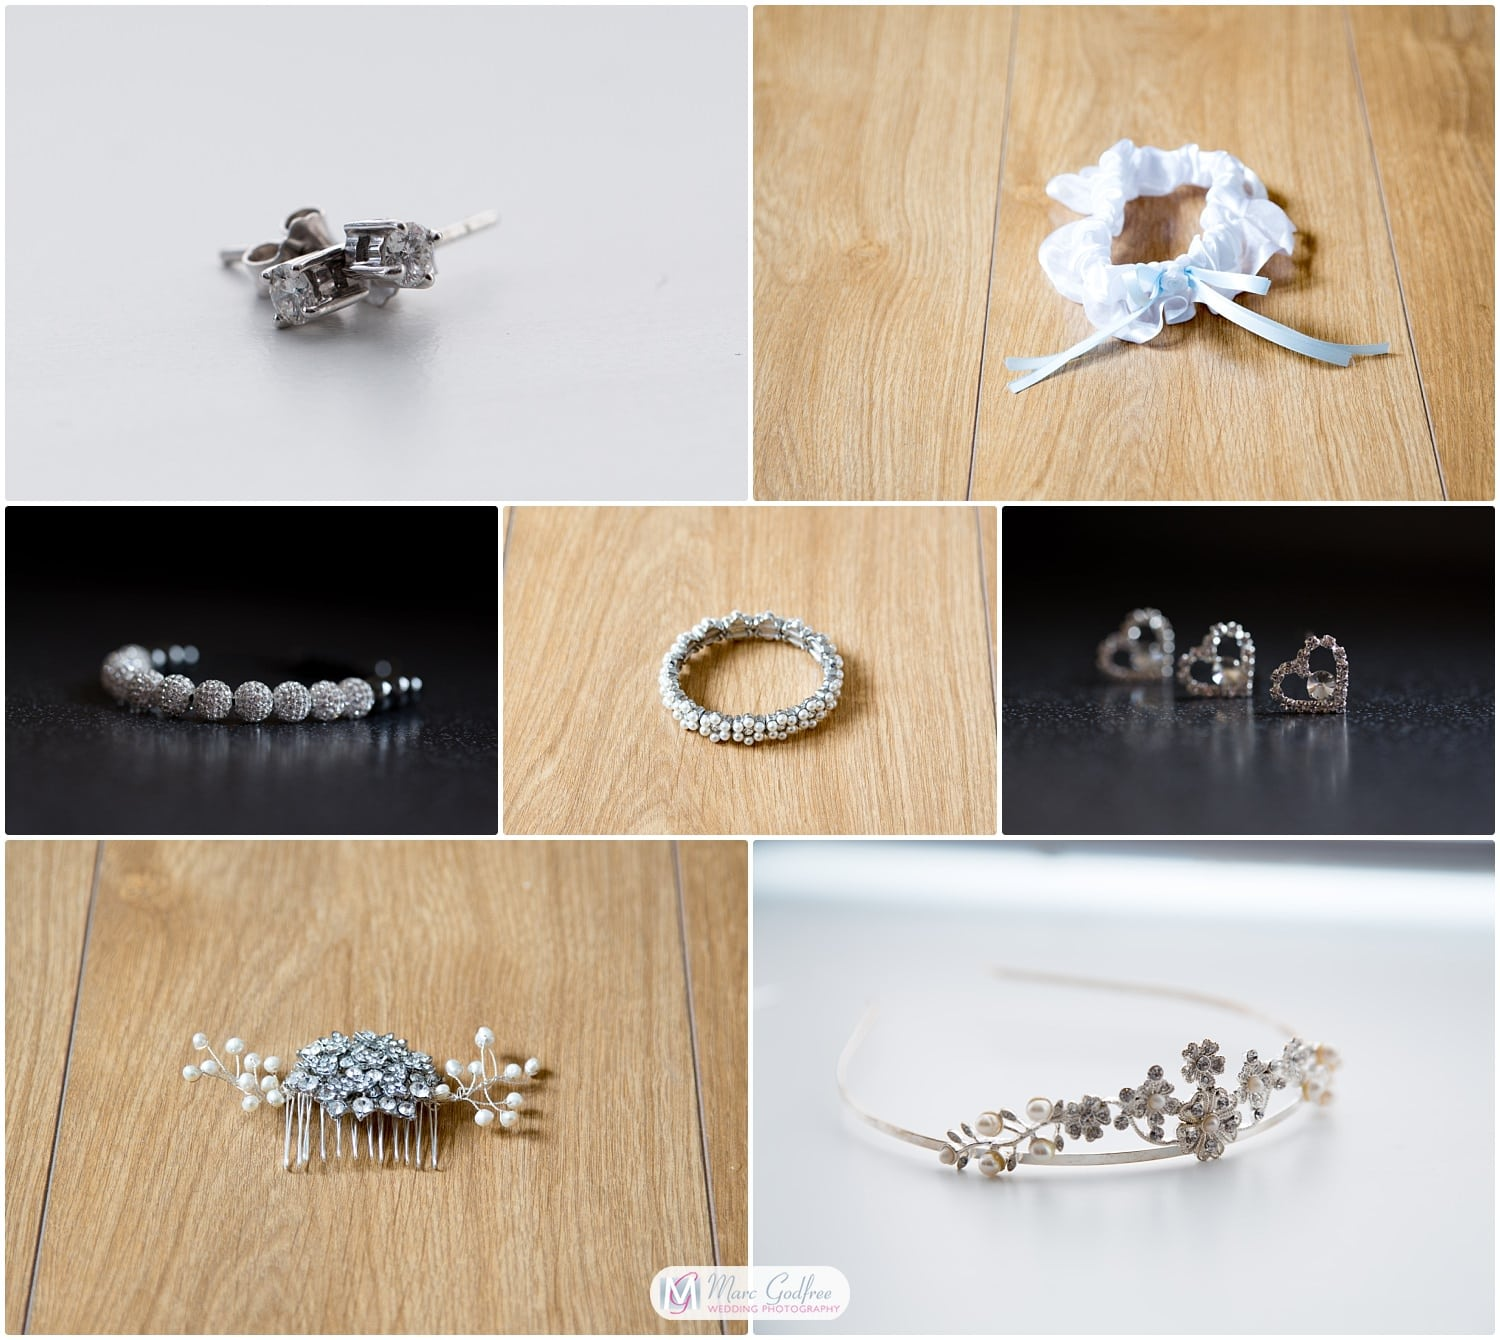 wedding photos you probably didn't consider-accessories